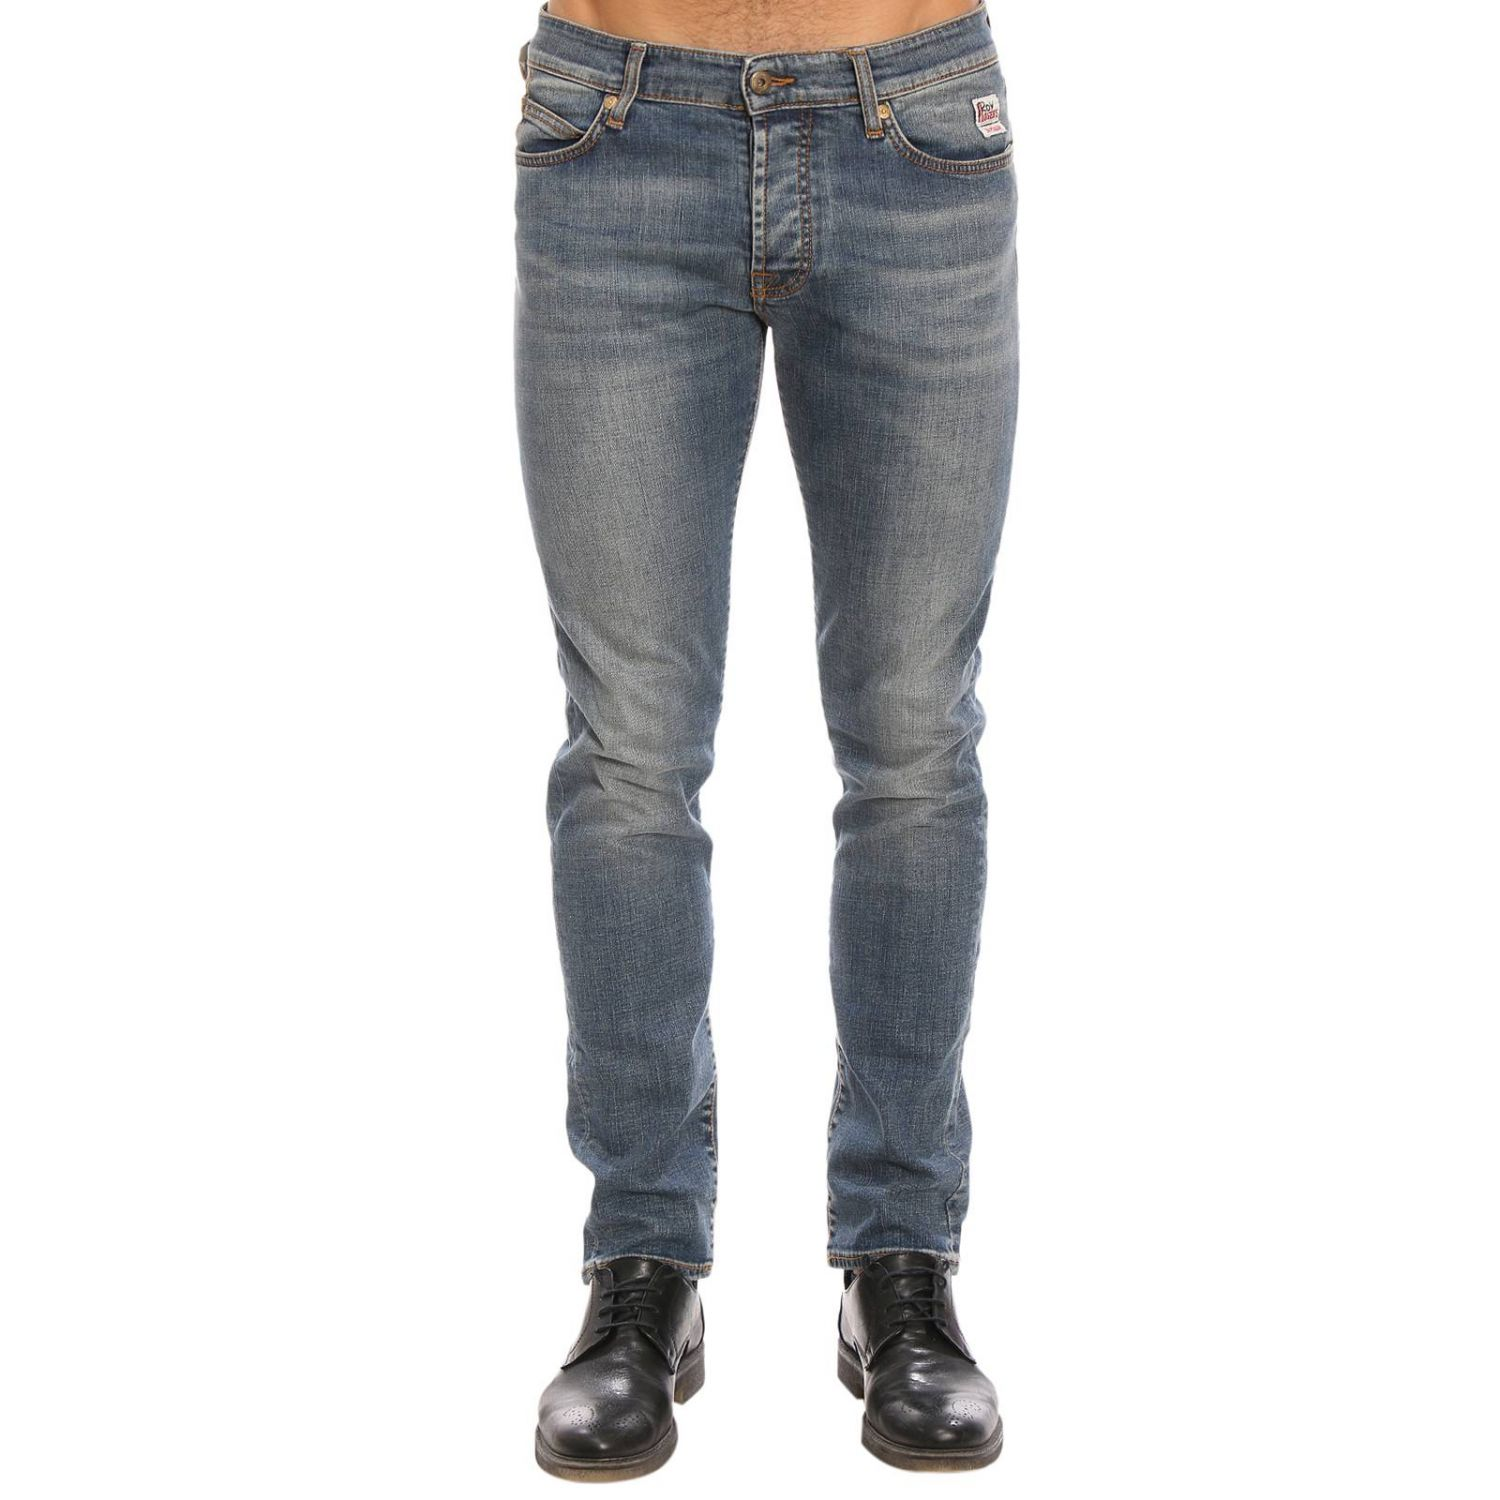 Jeans hombre Roy Rogers azul oscuro 1